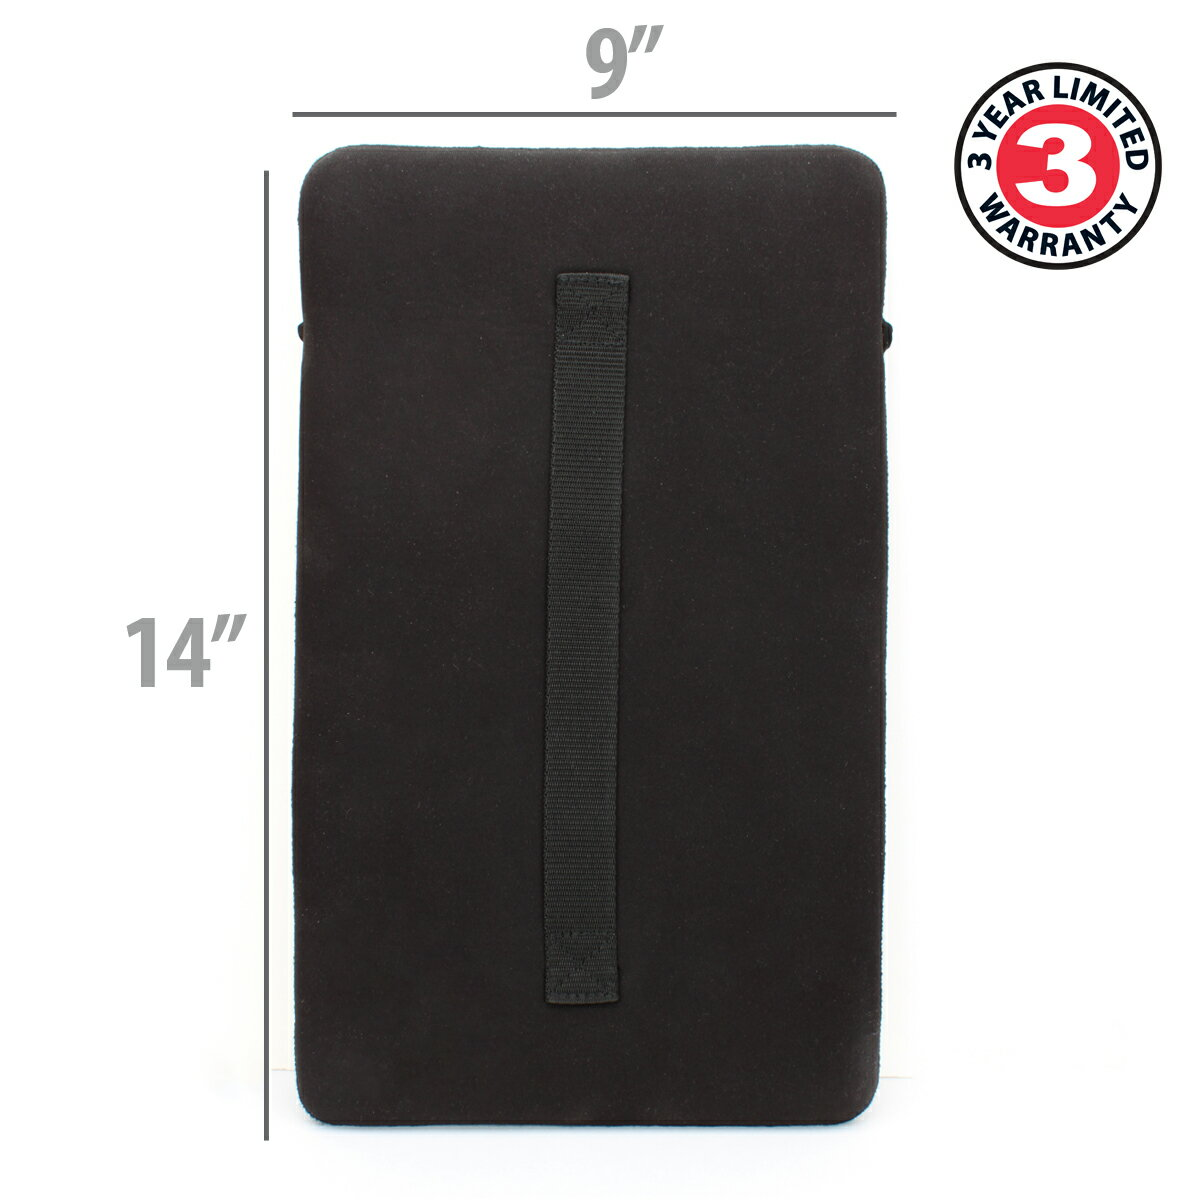 Neoprene Tablet Sleeve w/ Carrying Handle , Accessory Pocket & Impact Resistant Material by USA Gear 1